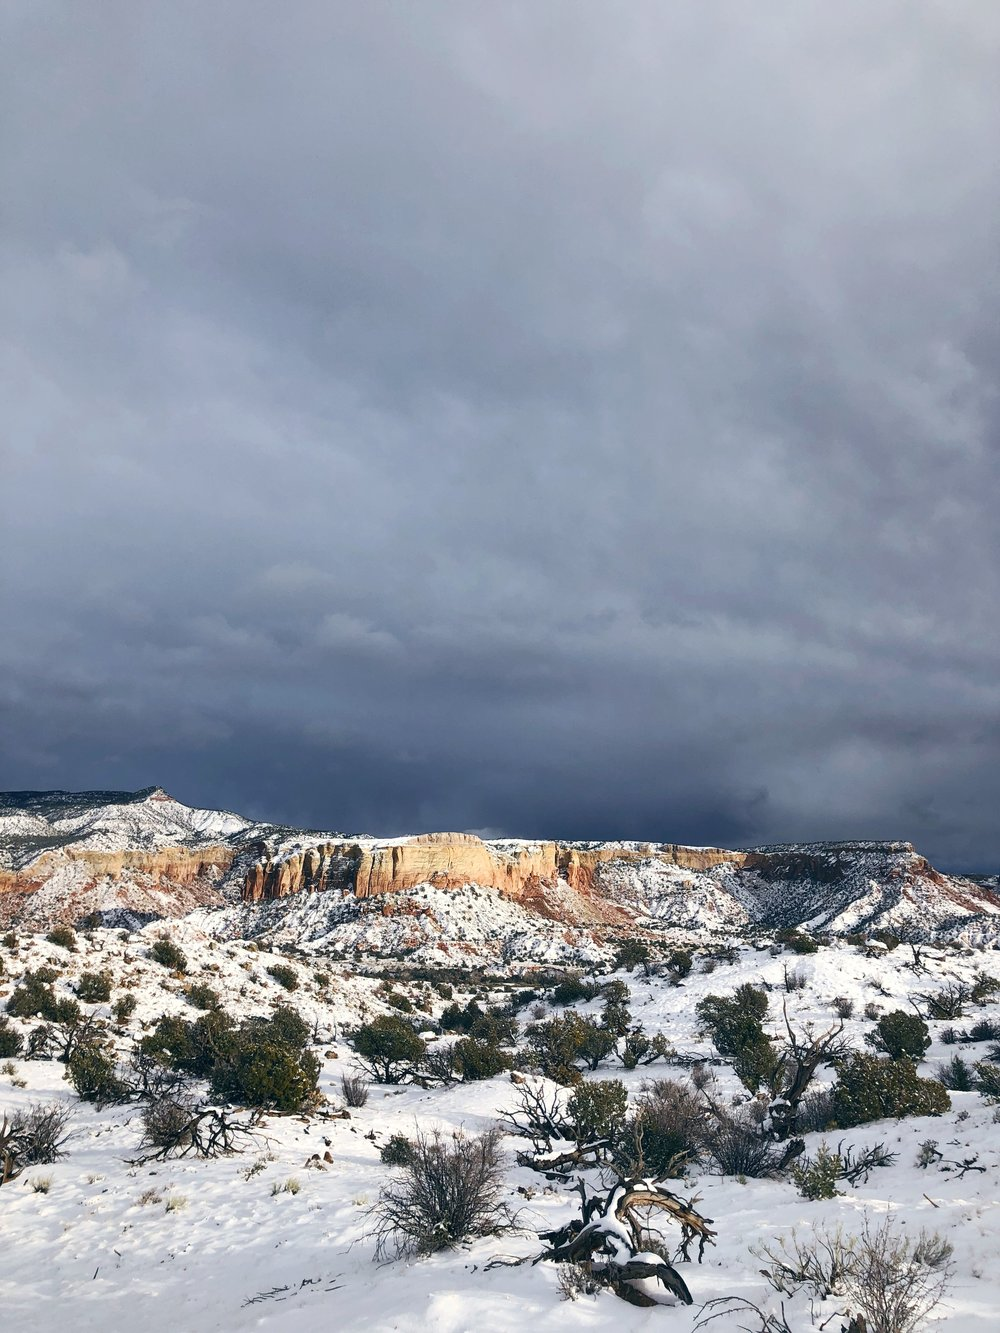 December: The  most magical of snowstorms  at Ghost Ranch